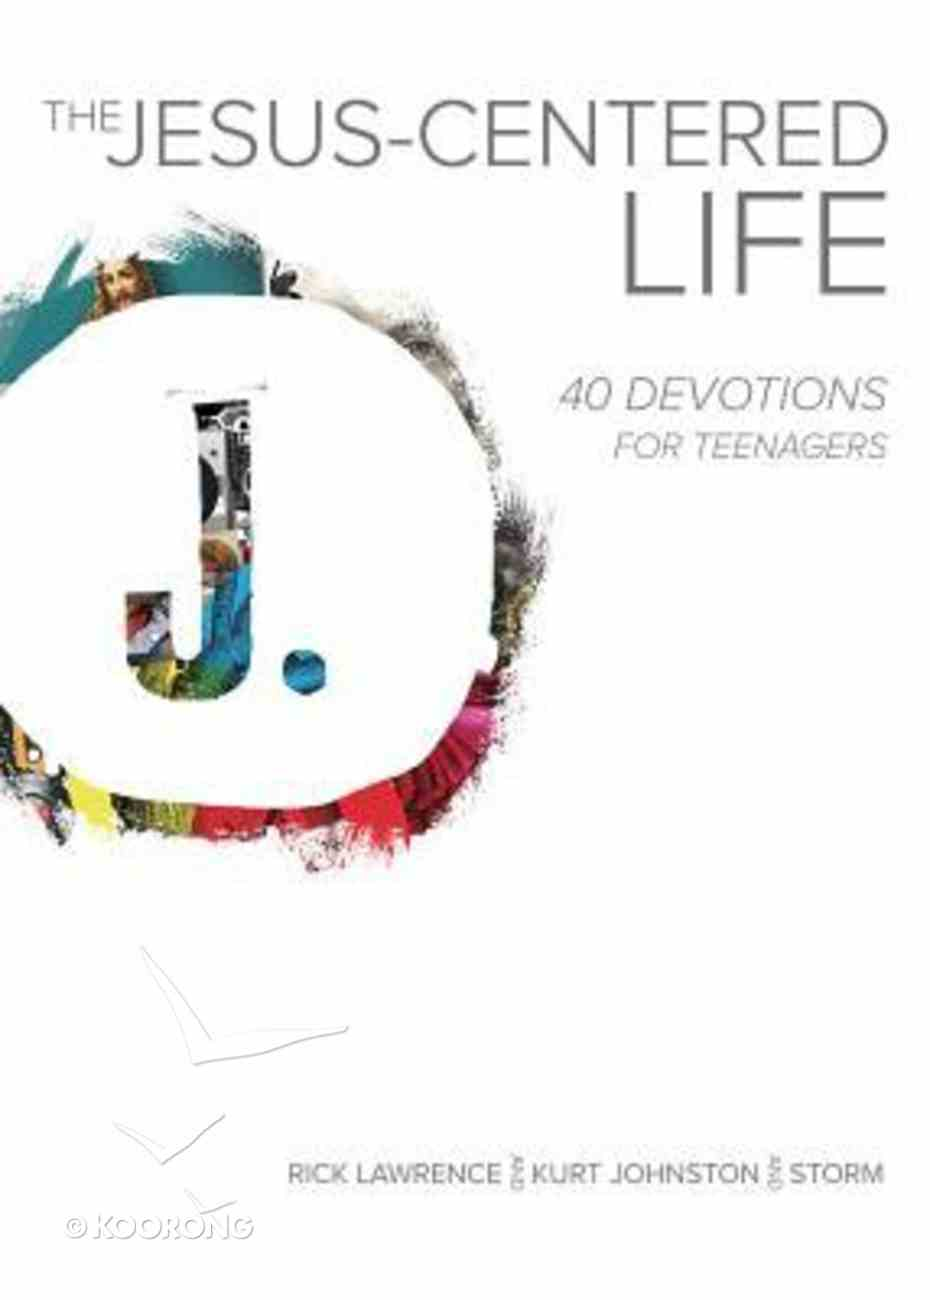 The Jesus-Centered Life: 40 Devotions For Teenagers Paperback